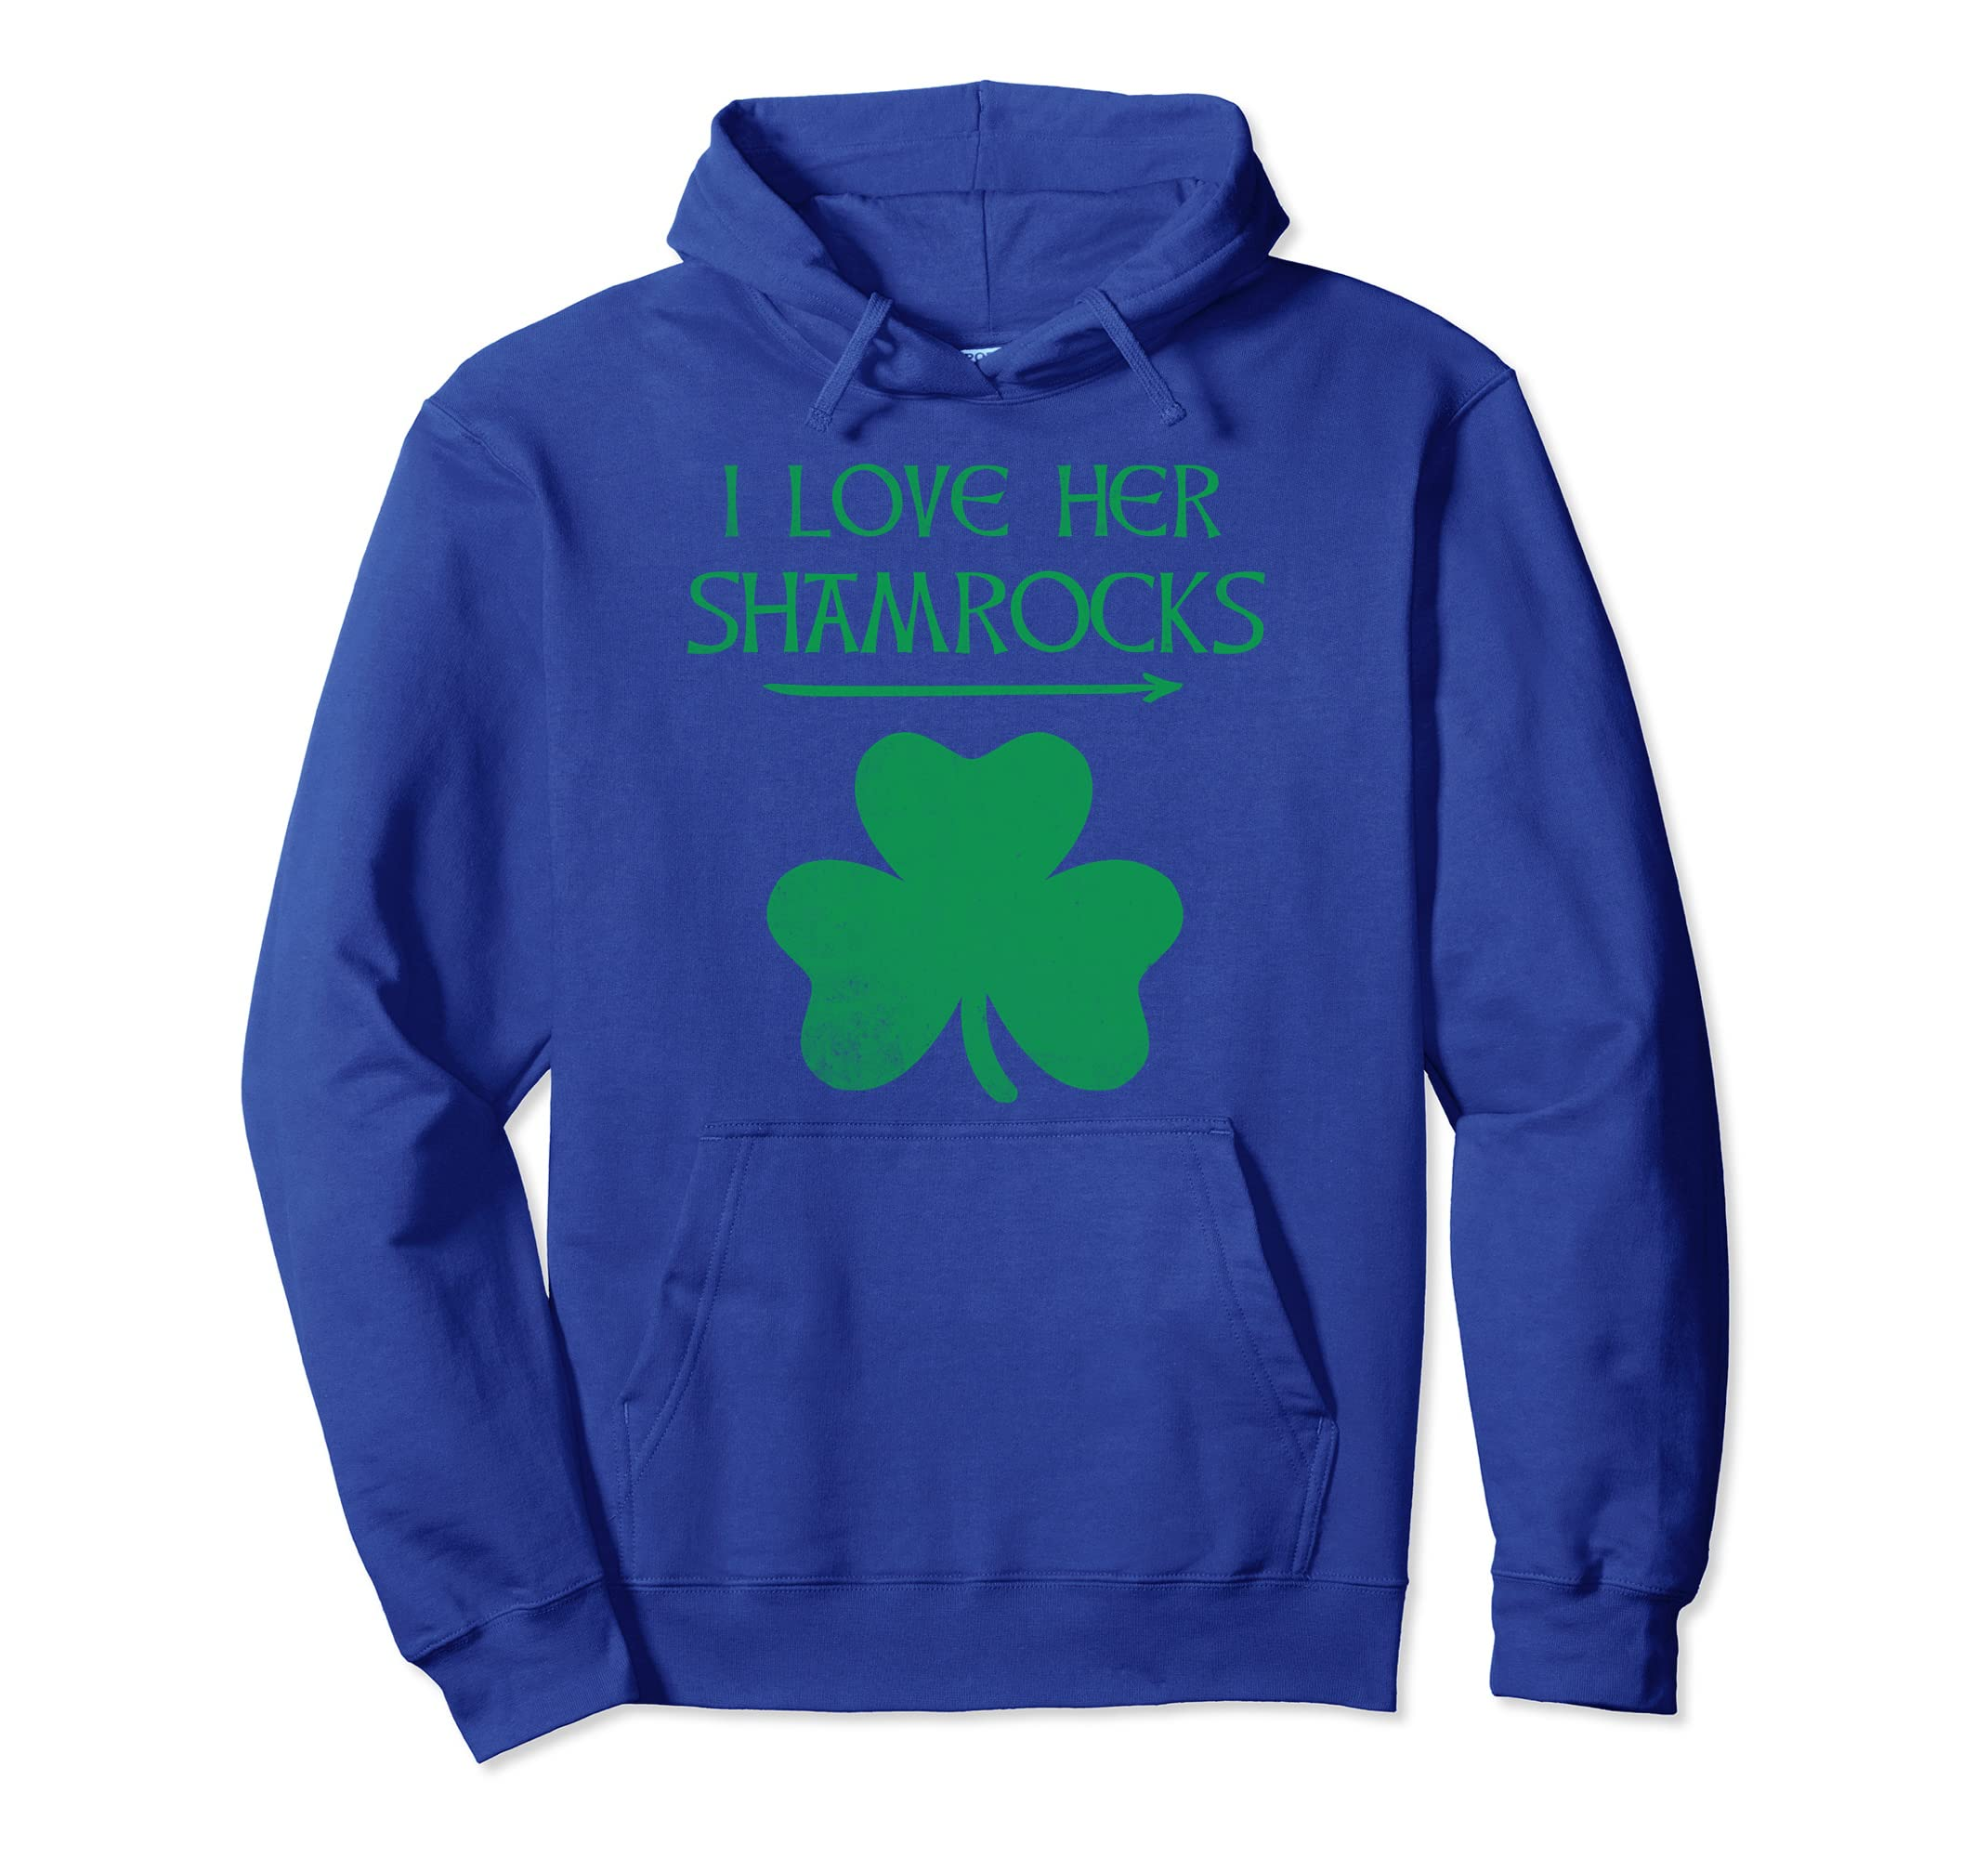 9c3b561db Amazon.com: Funny Couples St. Patty's Day T-Shirt I Love Her Shamrocks:  Clothing